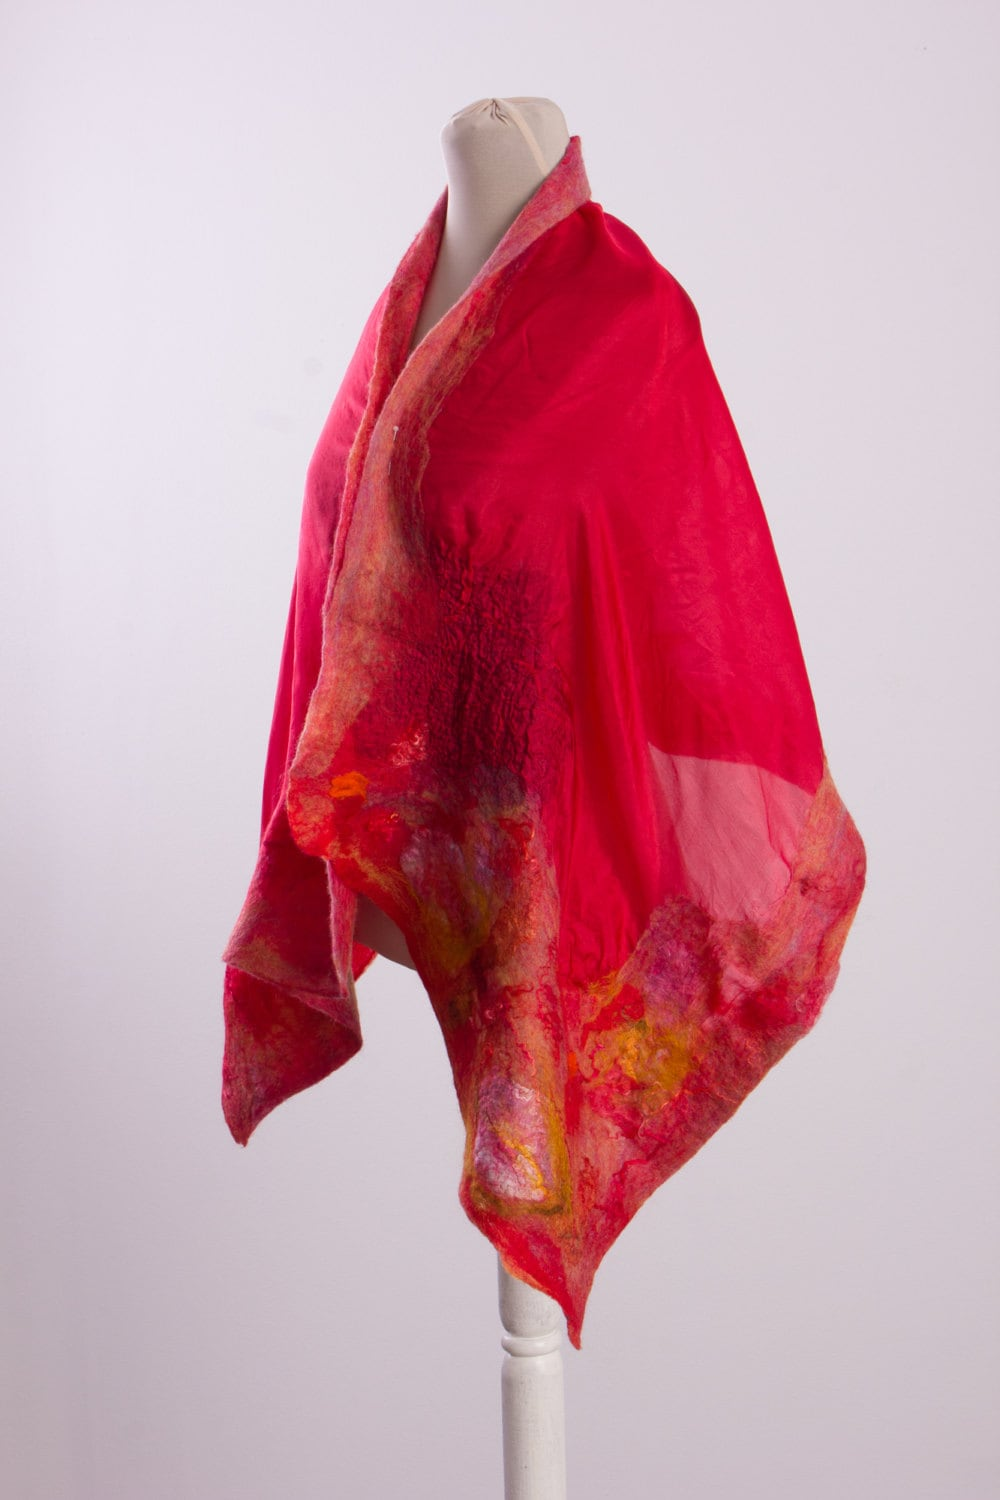 Vintage Scarf Styles -1920s to 1960s Blanket Scarf in Red, Boho Shawl, Wrap, Wool Felted Scarf, Sweater Wrap Lightweight Wet Felted Nuno $56.00 AT vintagedancer.com